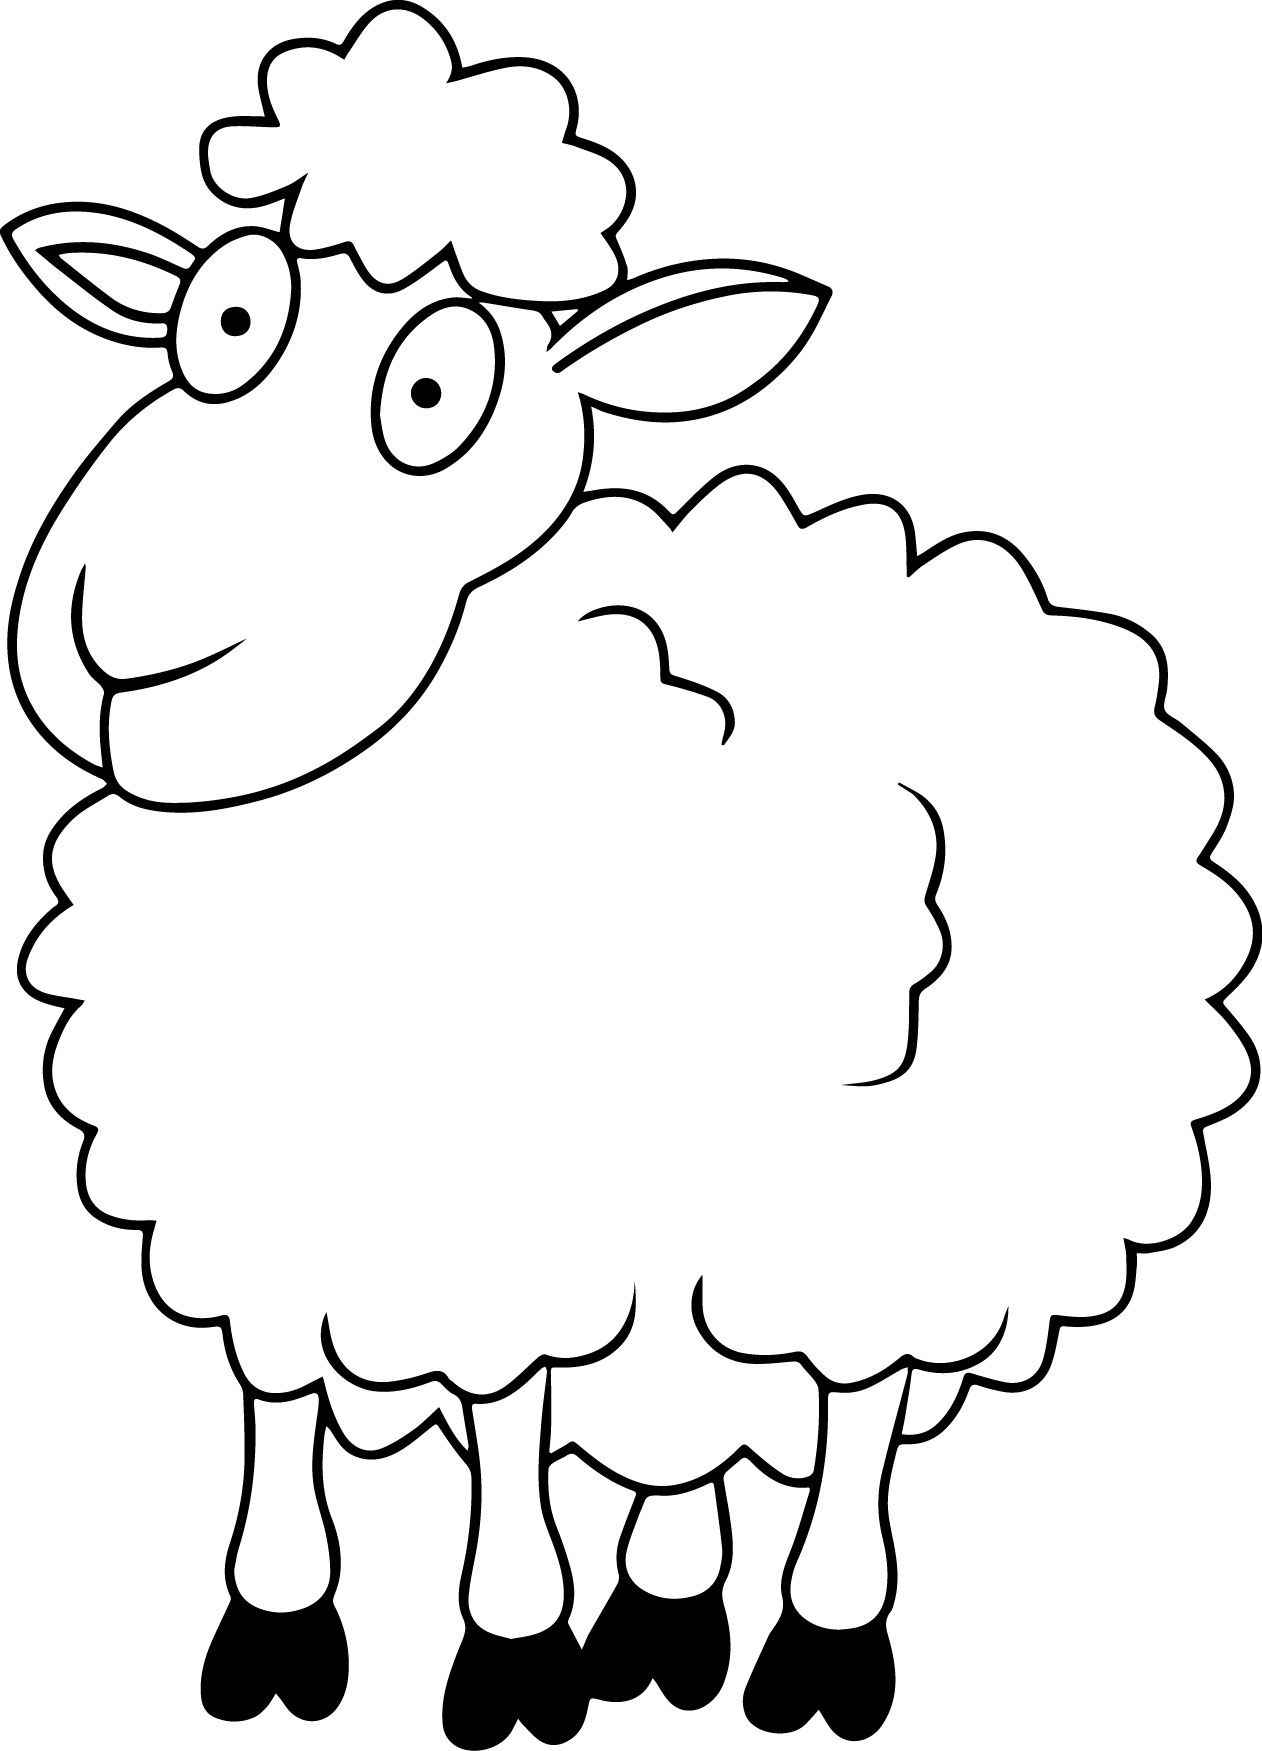 sheep coloring pages to print sheep outline coloring page coloring home coloring sheep pages print to